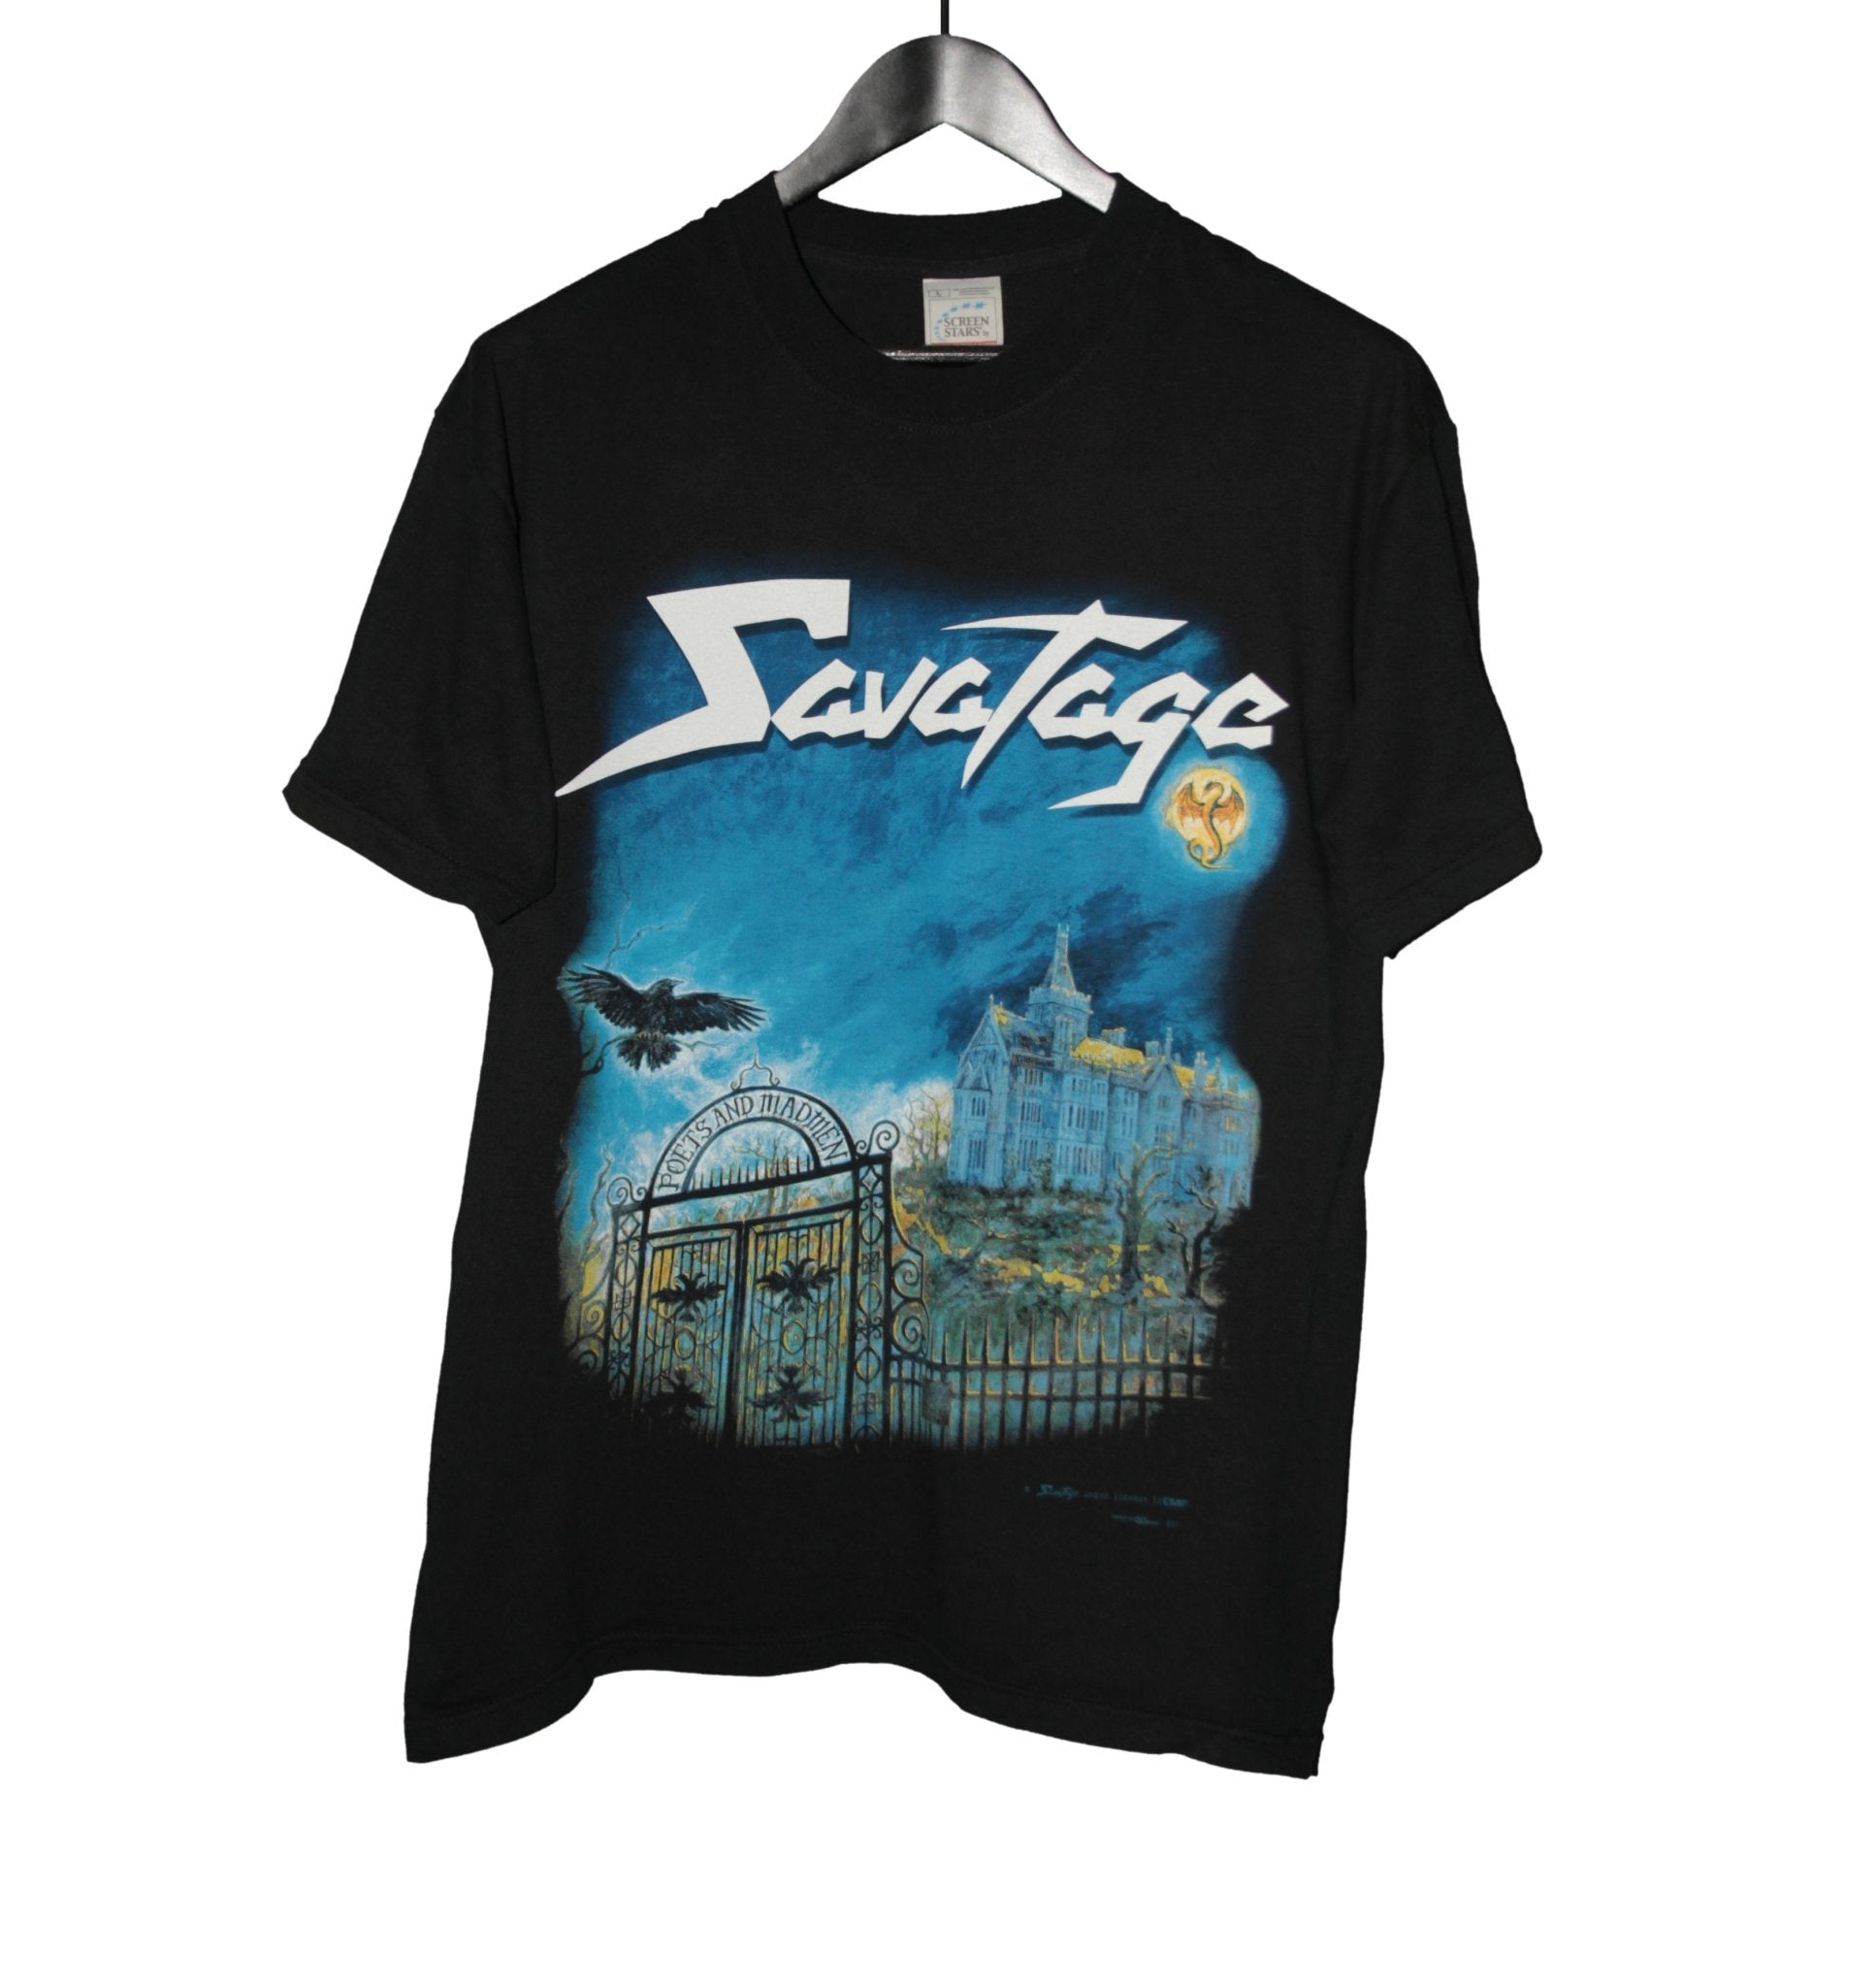 Savatage Poets And Madmen Shirt - Faded AU